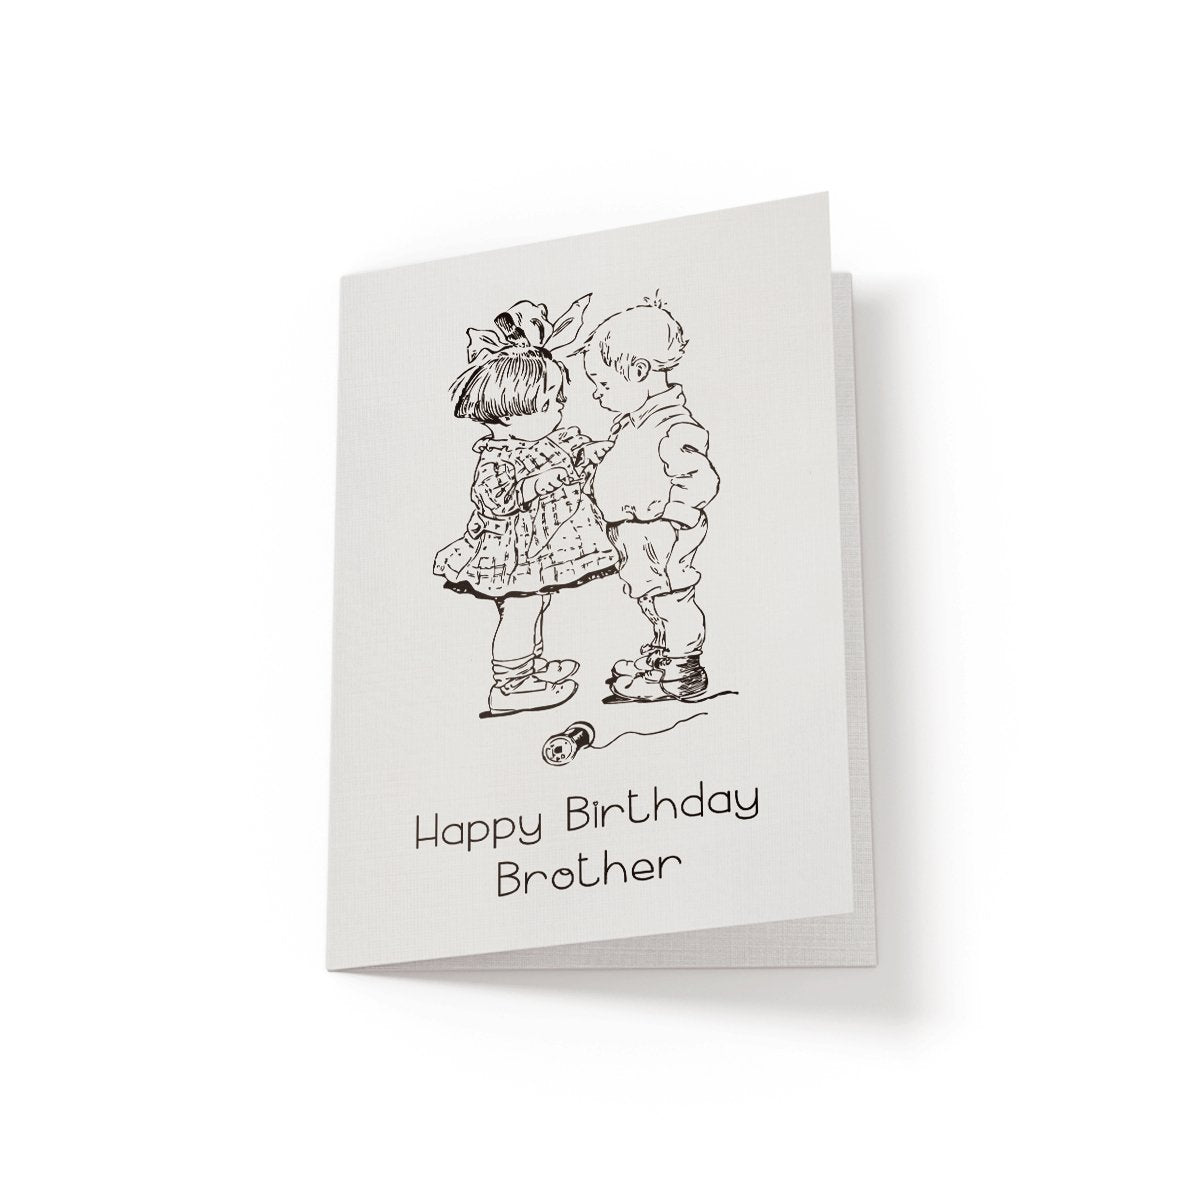 Happy Birthday Brother - Greeting Card - Netties Expressions